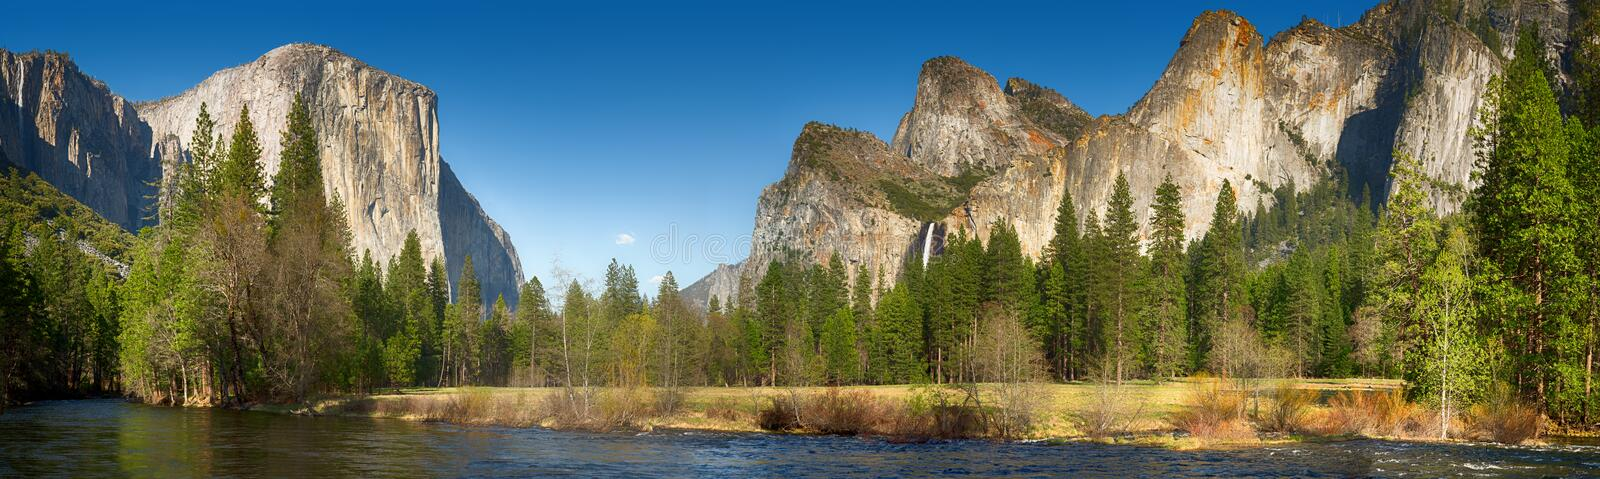 Yosemite valley and merced river. Yosemite Valley panorama showing the upper Yosemite Falls and the Bridalveil Falls with the Merced river in the foreground stock photo